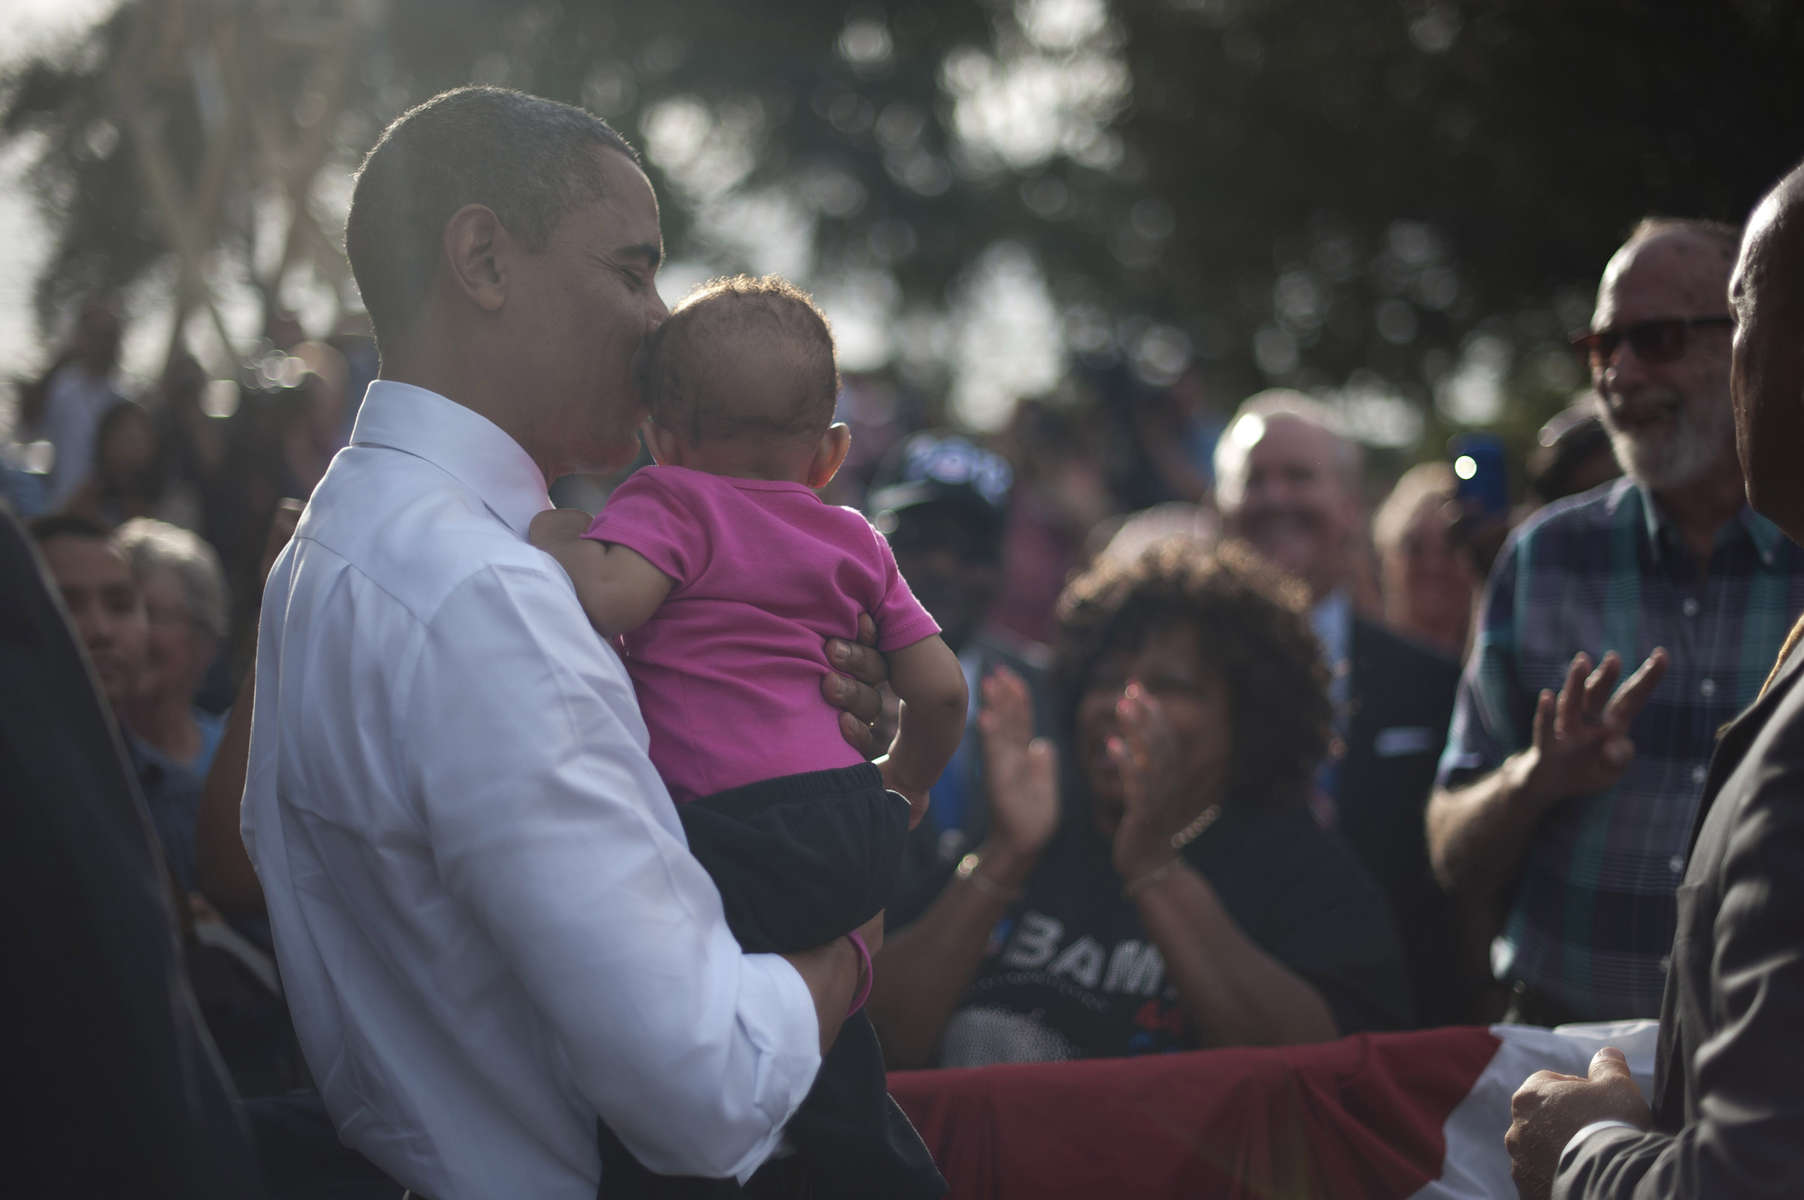 October 25, 2012 - Tampa, FL:  President Barack Obama kisses a small baby after a rally in Tampa's Centennial Park during a 48 hour straight swing of campaign events. (Scout Tufankjian for Obama for America/Polaris)